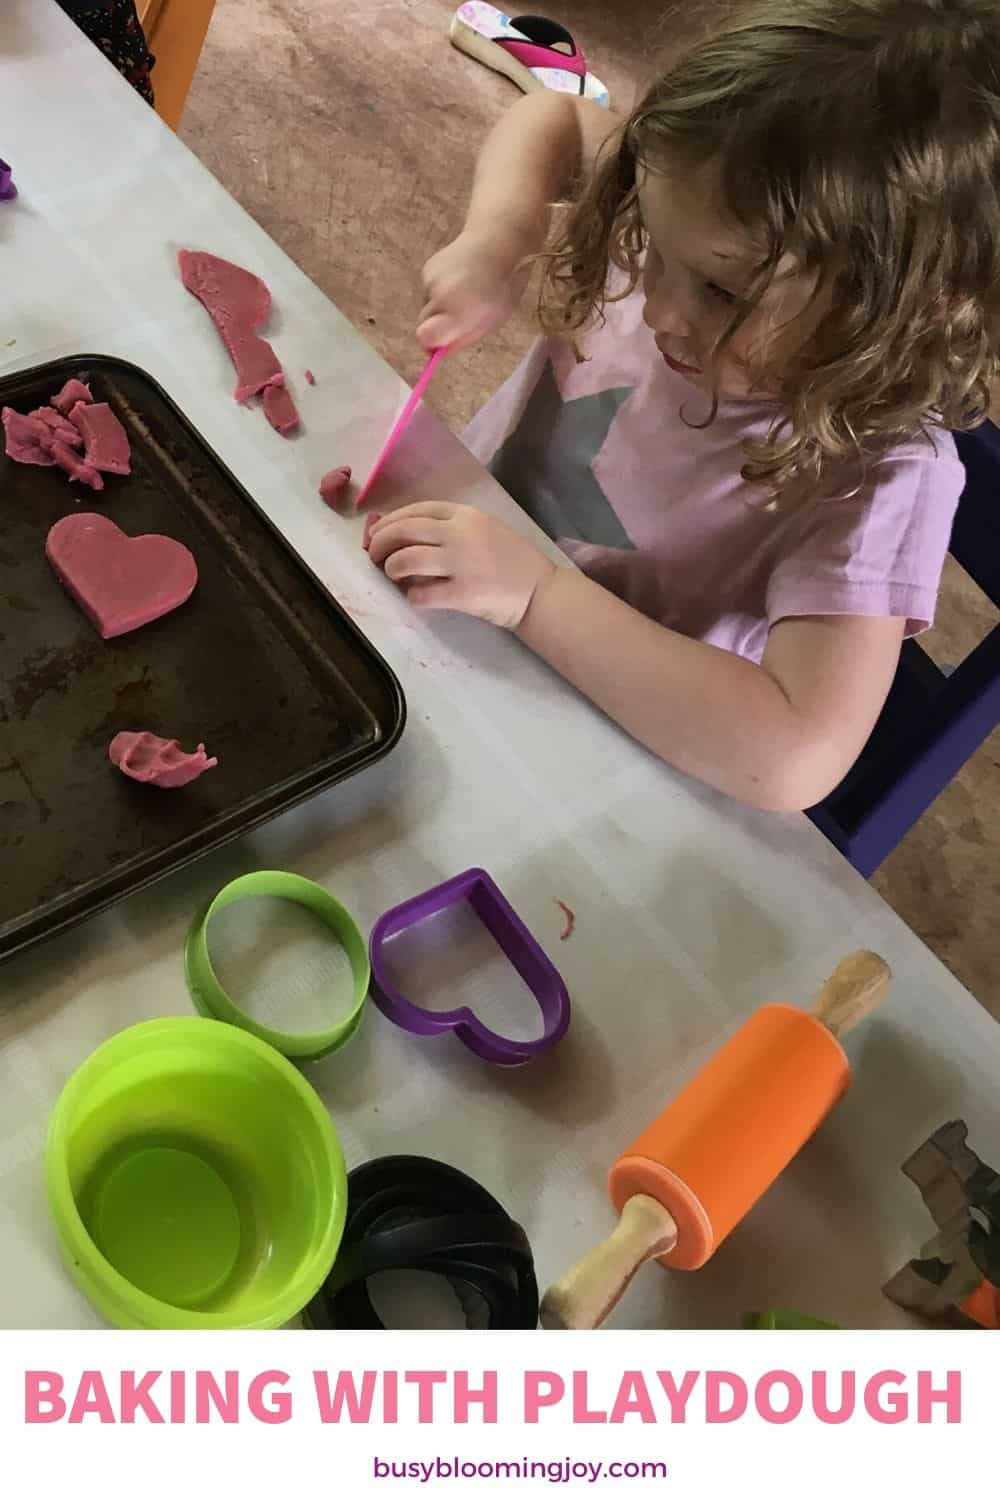 playdough is a wonderful easy sensory toddler activity to do at home